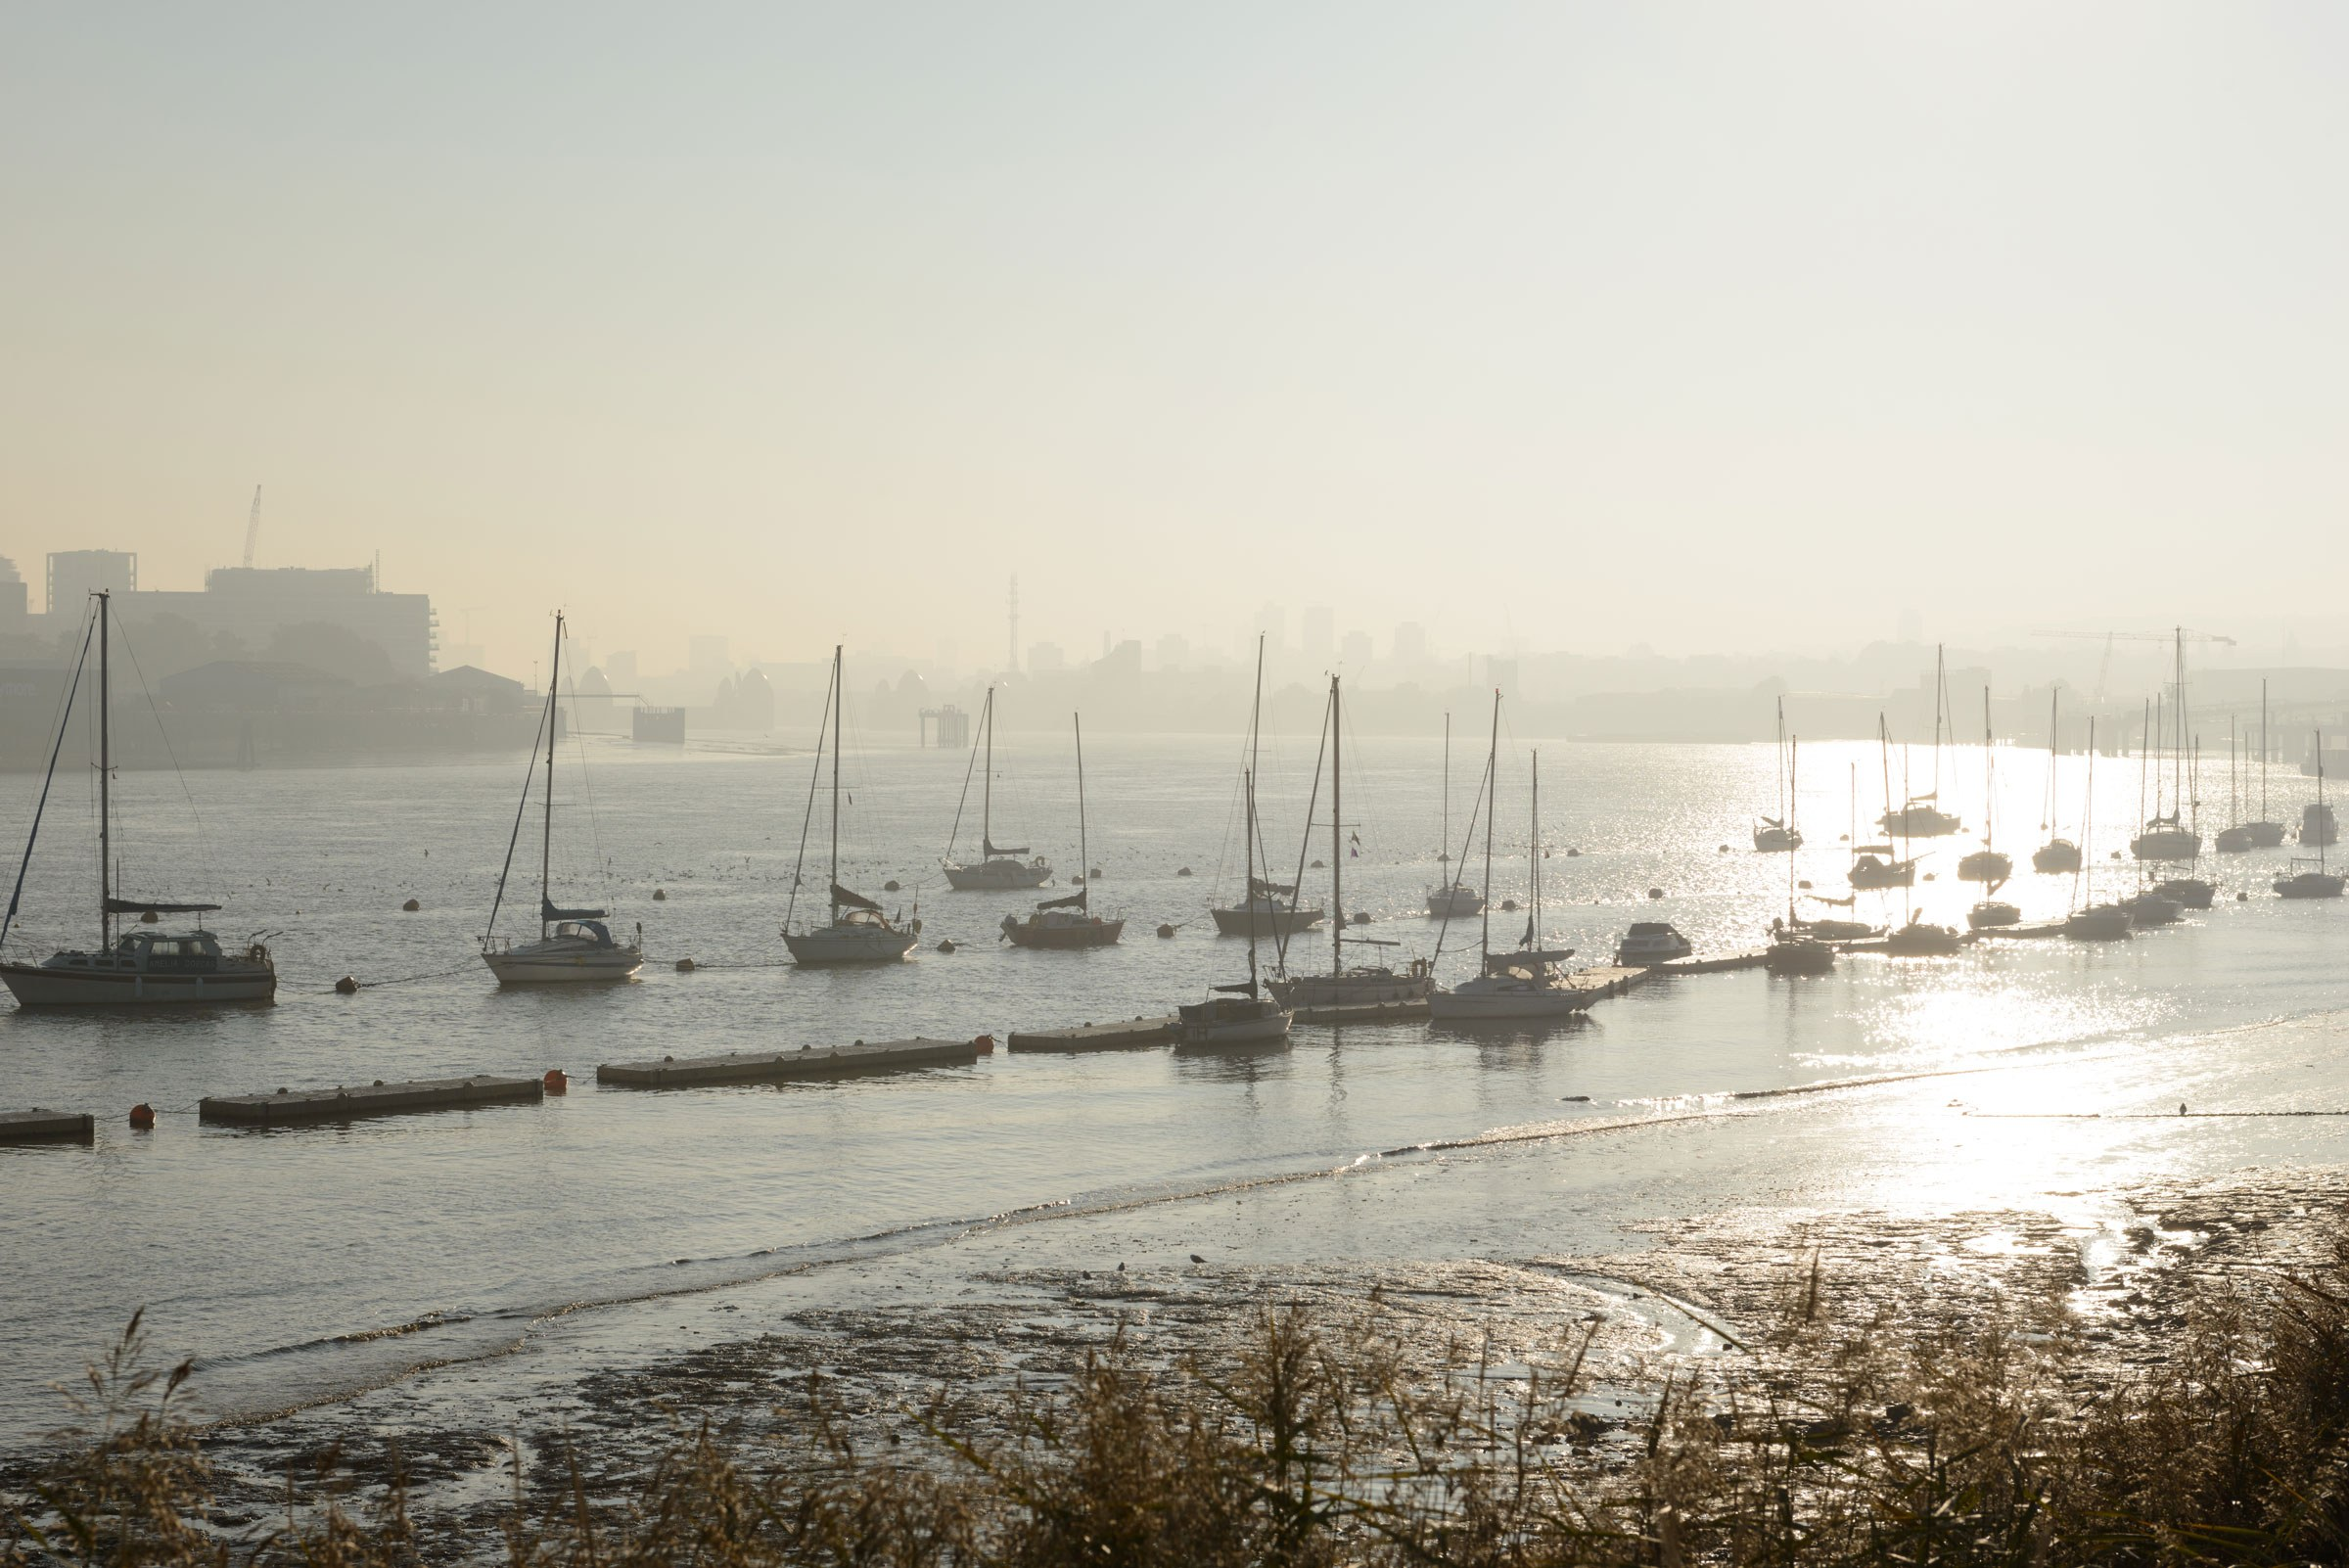 Boats in the Thames off the Royal Docks in hazy sun